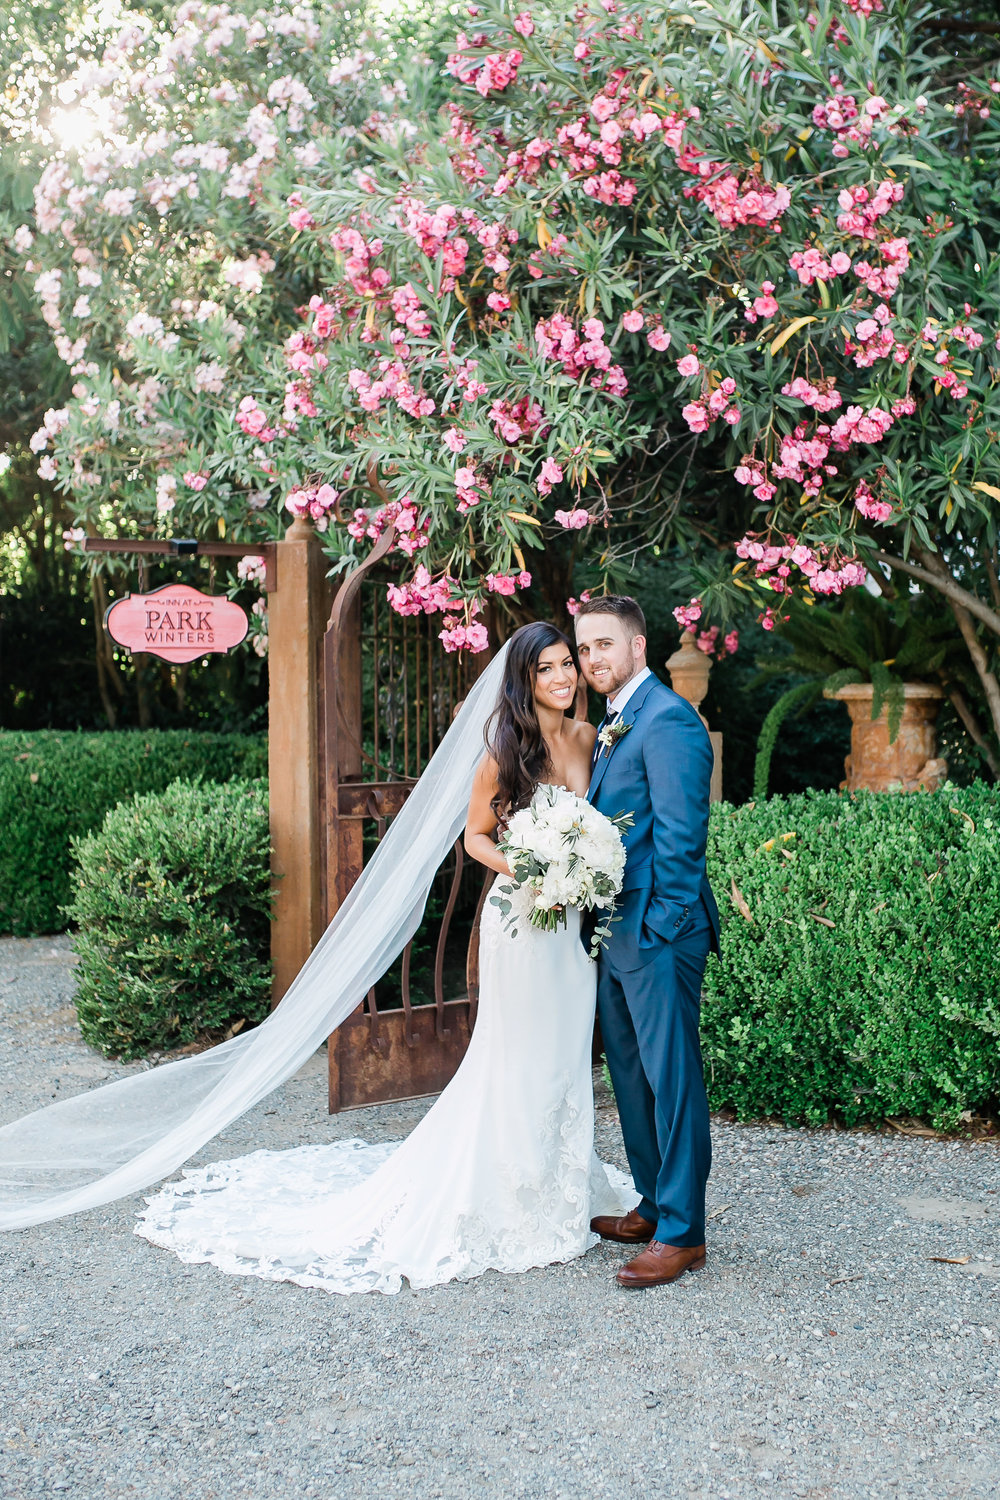 Park Winters Summer Wedding | Bride and Groom Photo